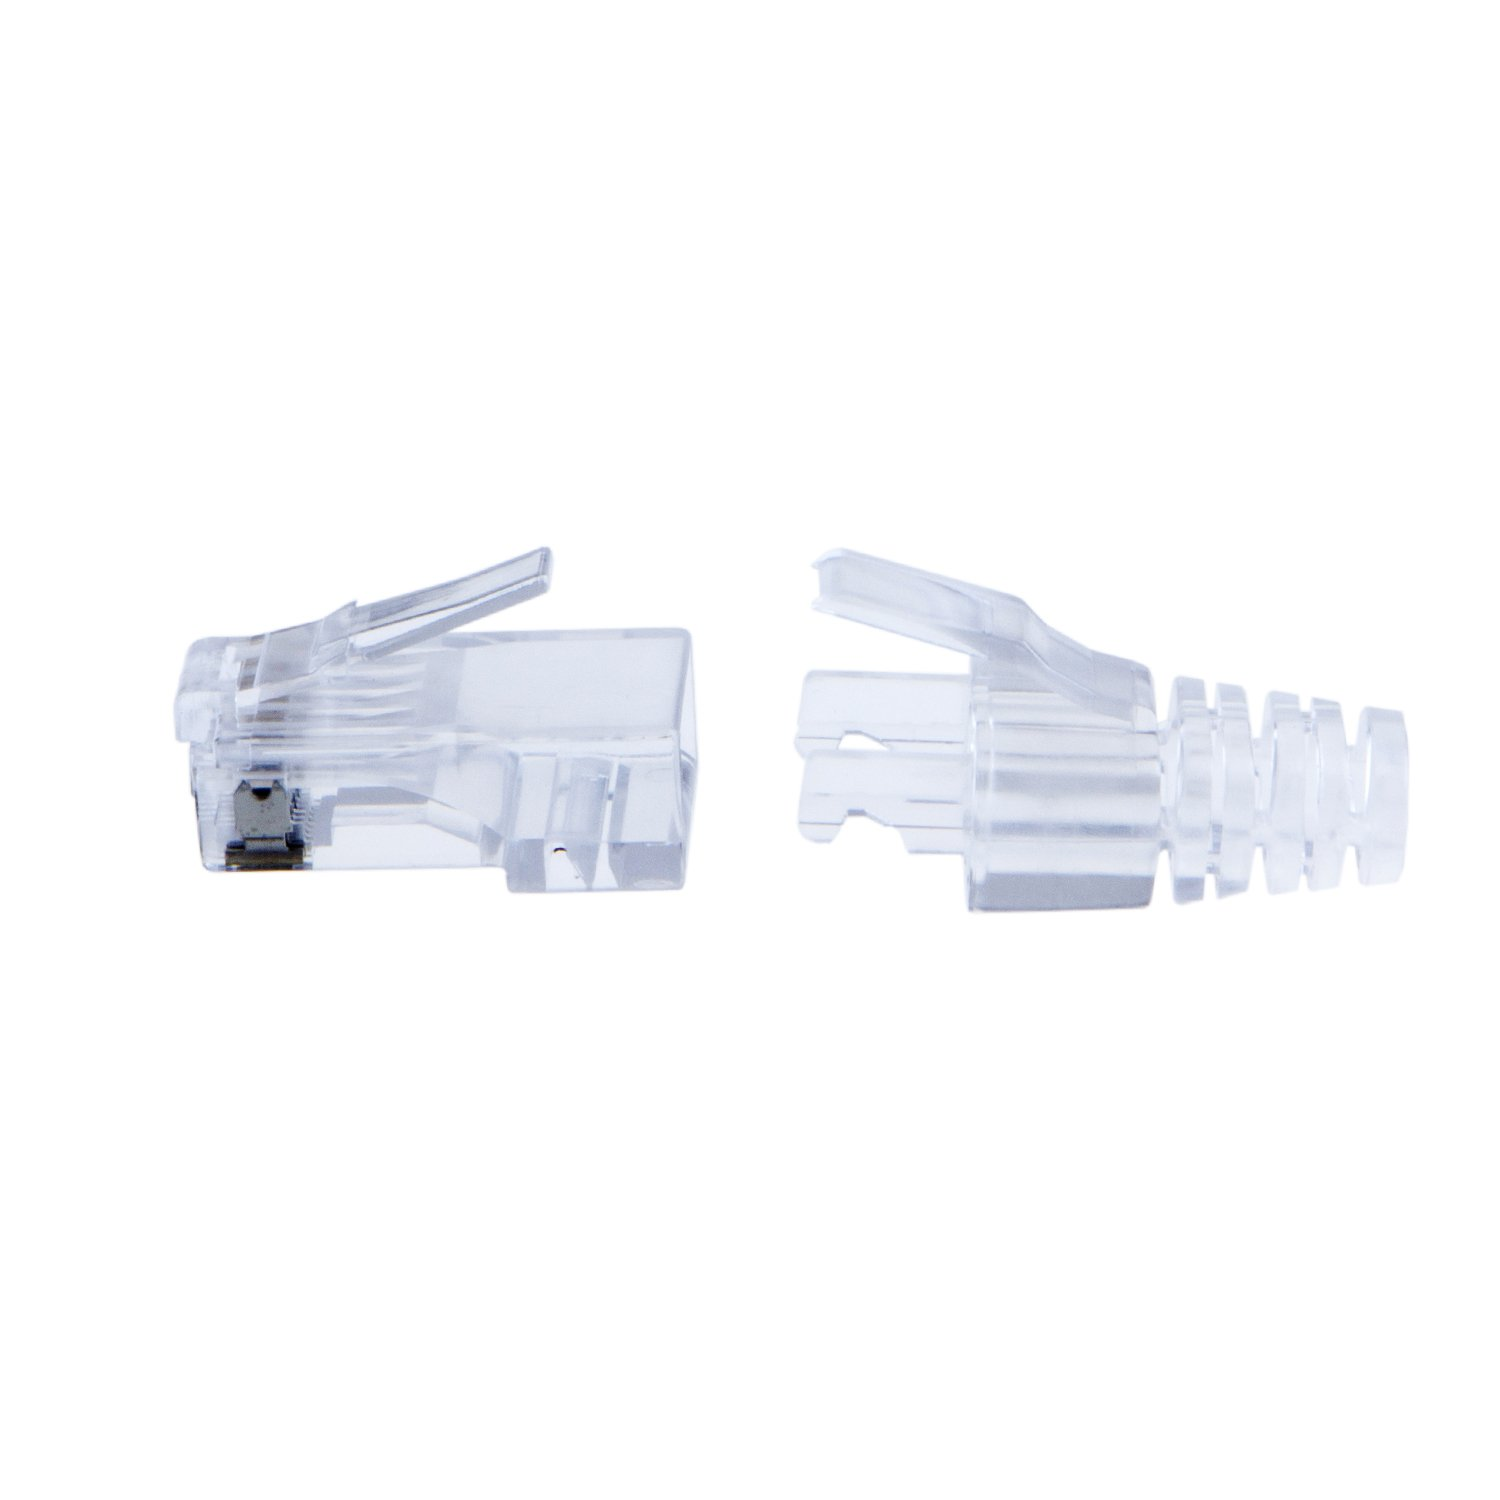 Cat6 Rj45 Ends Cablecreation 100 Pack Connector Cat6a Wiring Plug Cat5e